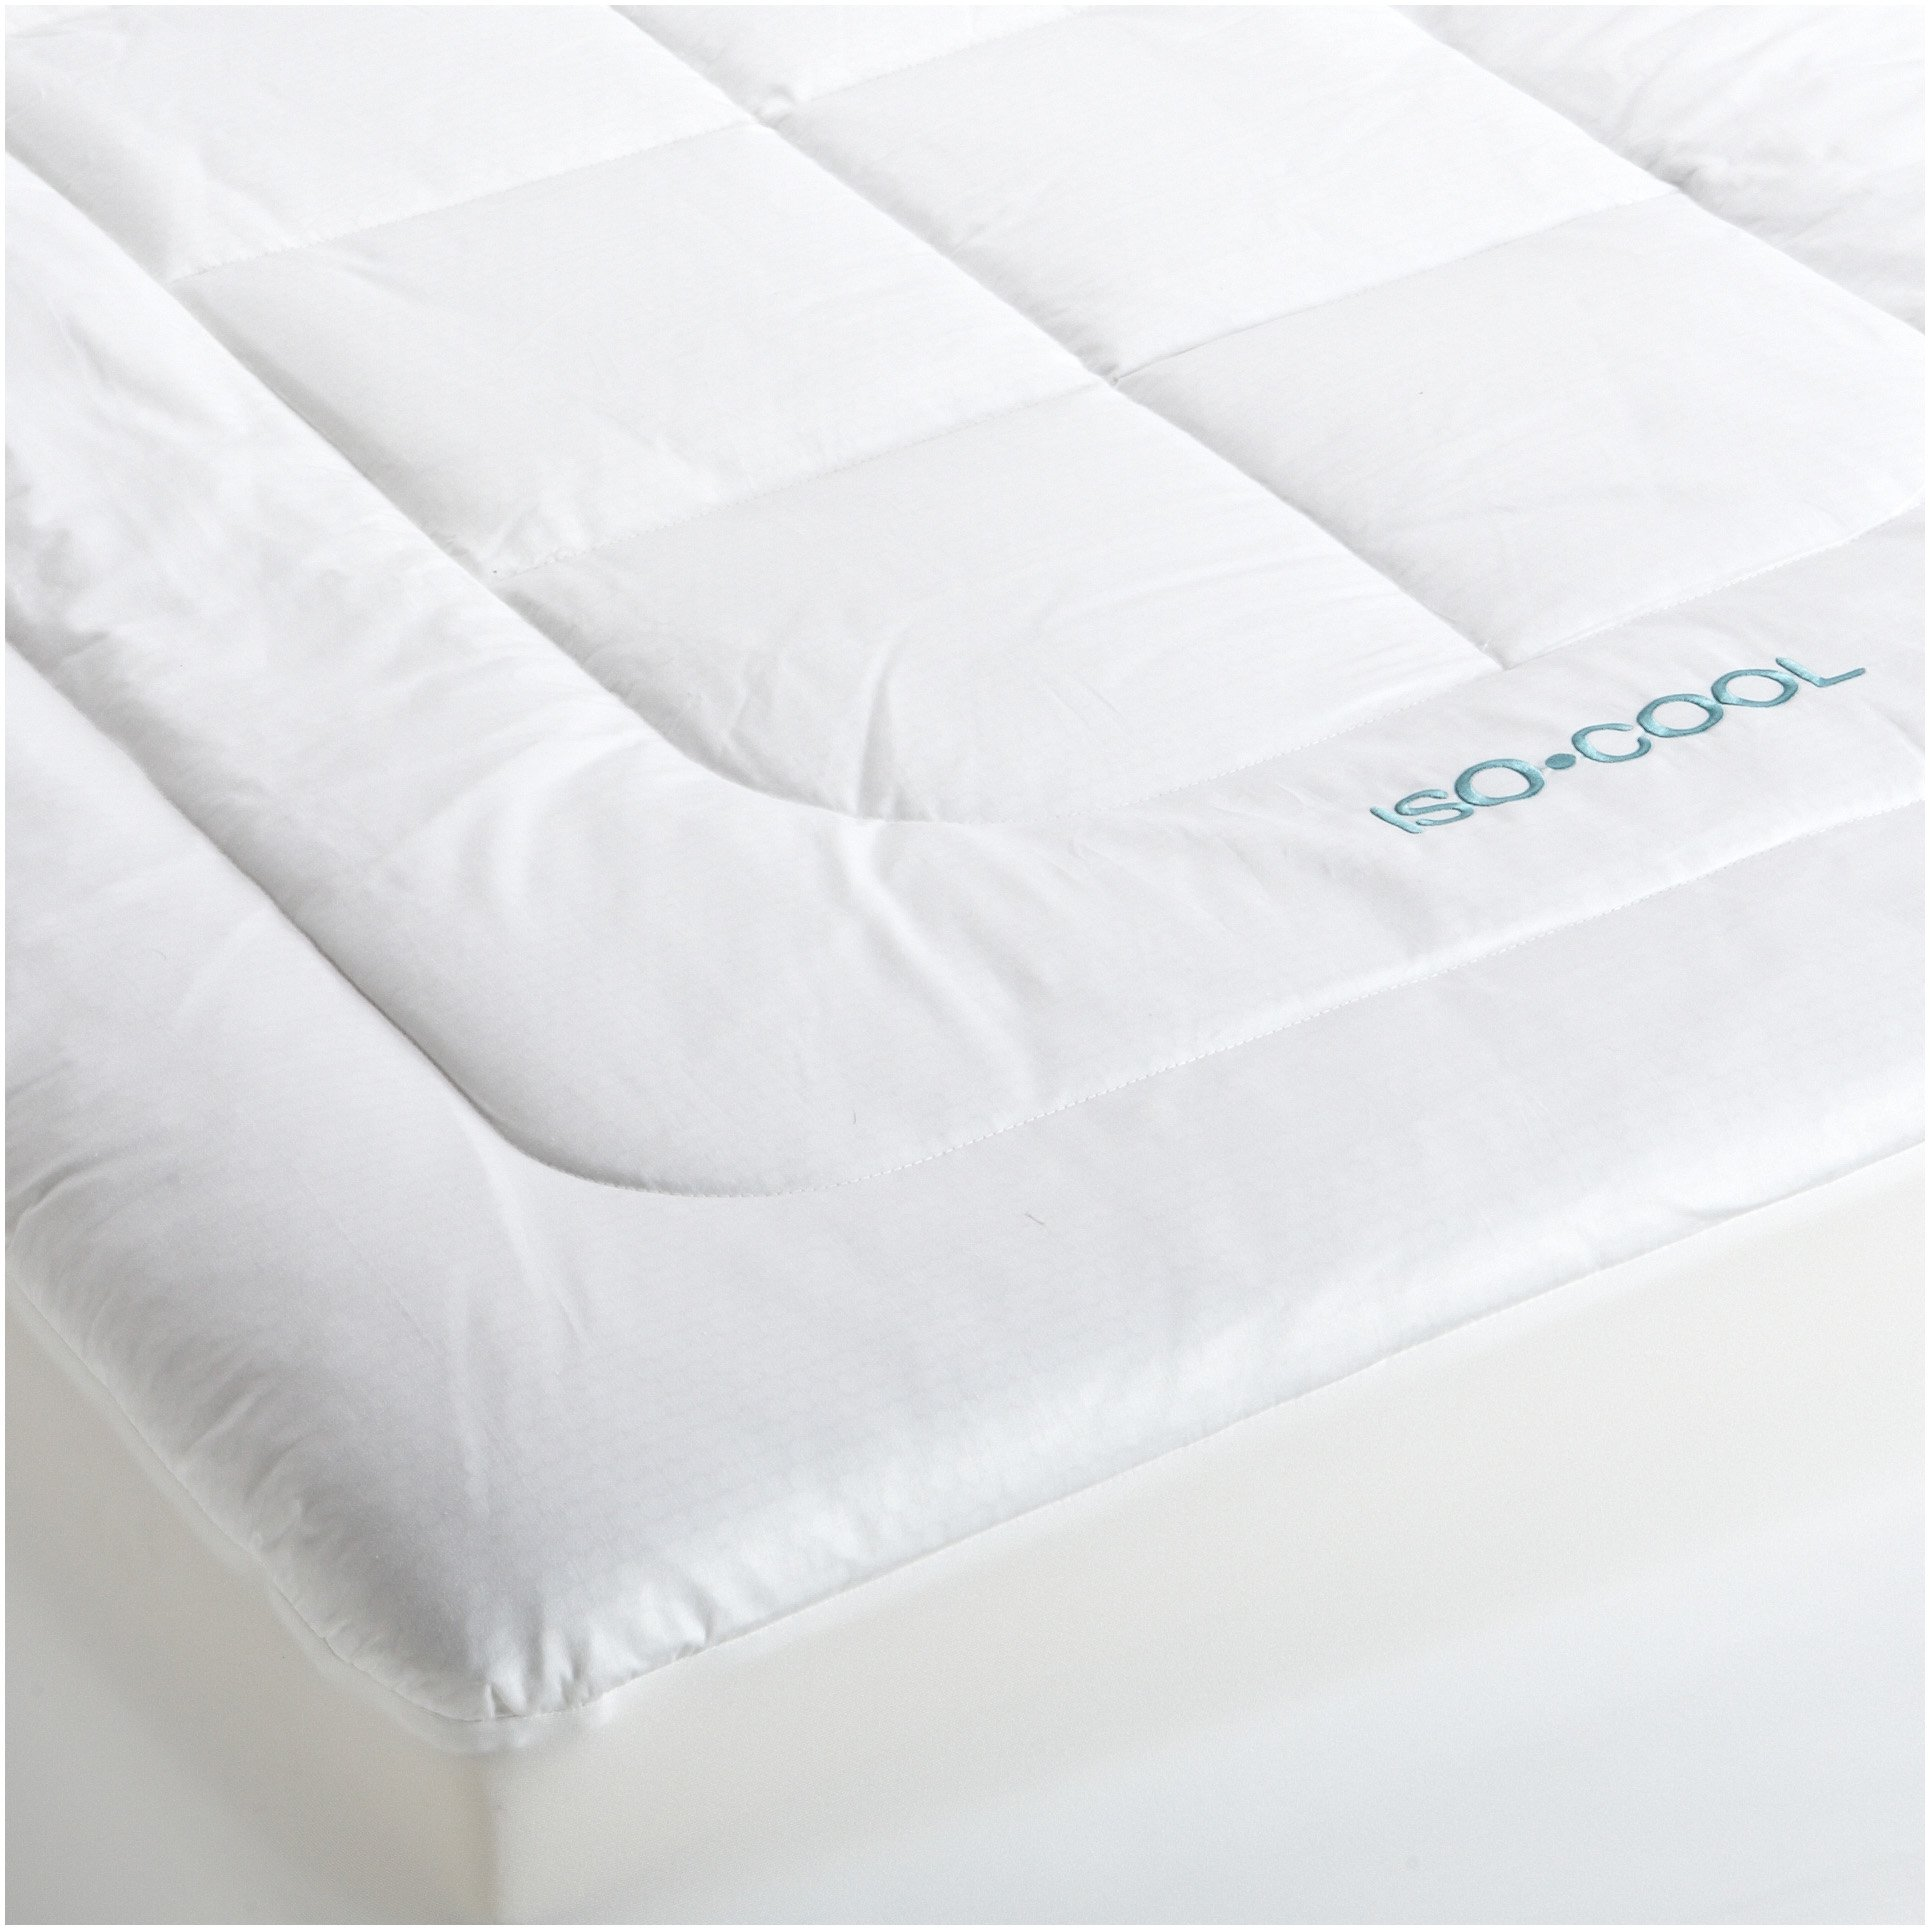 Iso-Cool Memory Foam Mattress Topper with Outlast Cover, King